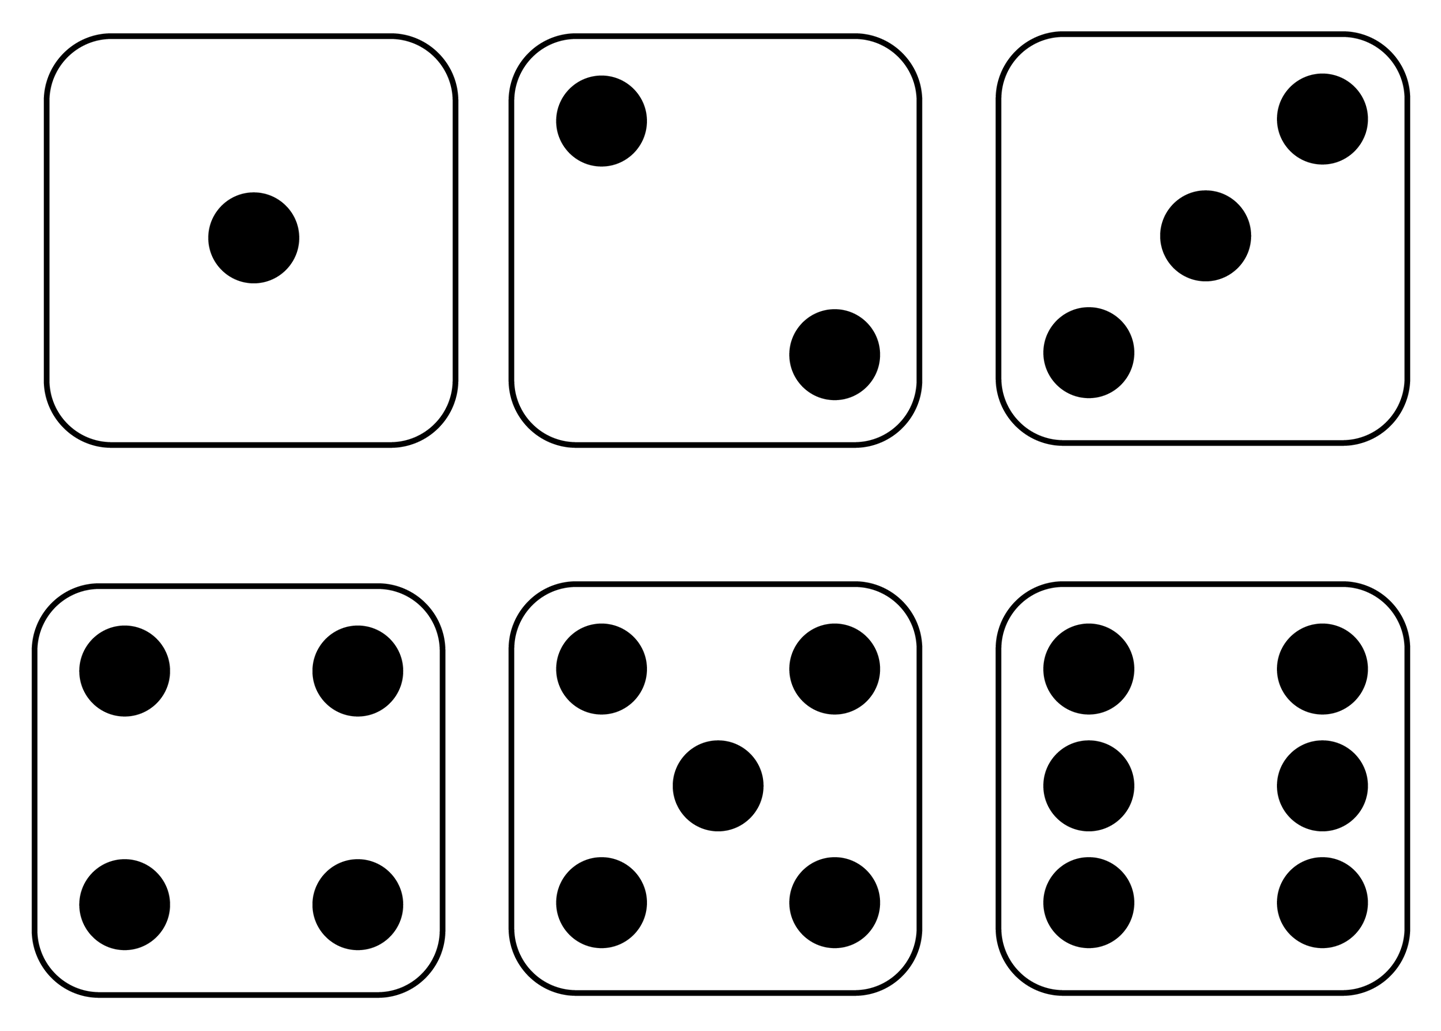 6 dice number clipart. Clipartfest best